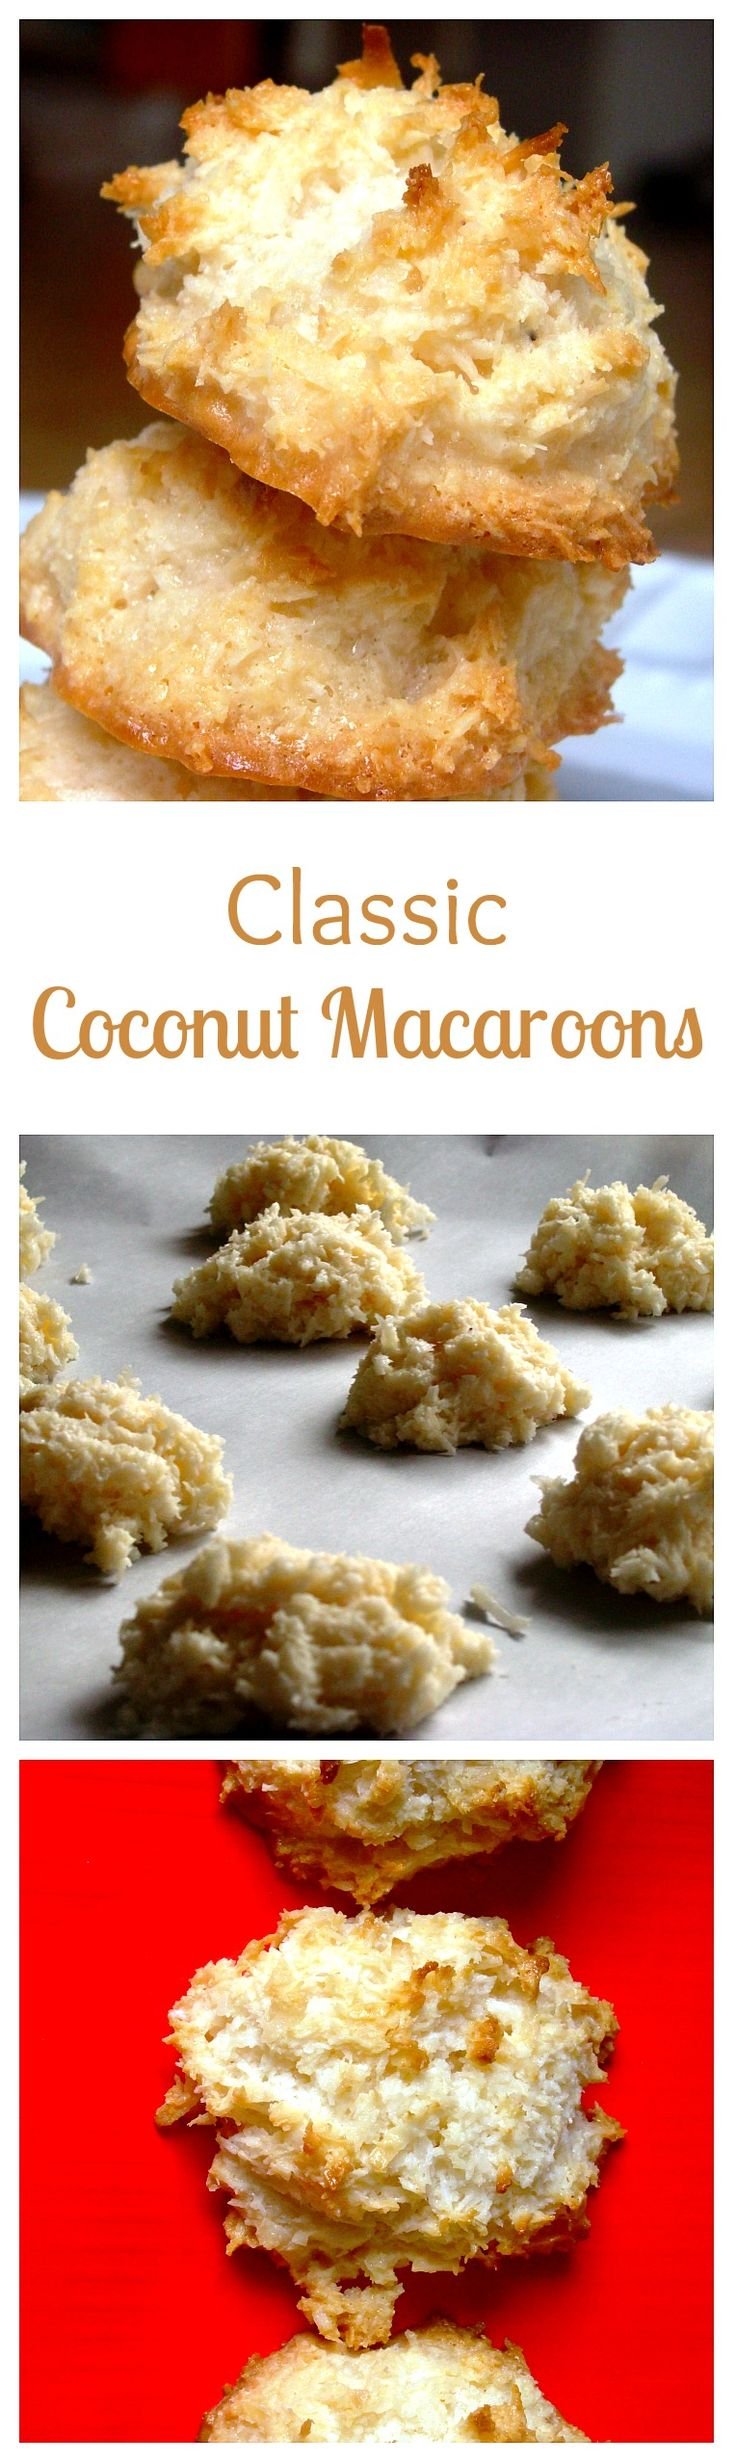 Coconut Macaroons ~ Golden brown, sweet and toasty coconut macaroons with moist chewy centers. Get the recipe on diethood.com